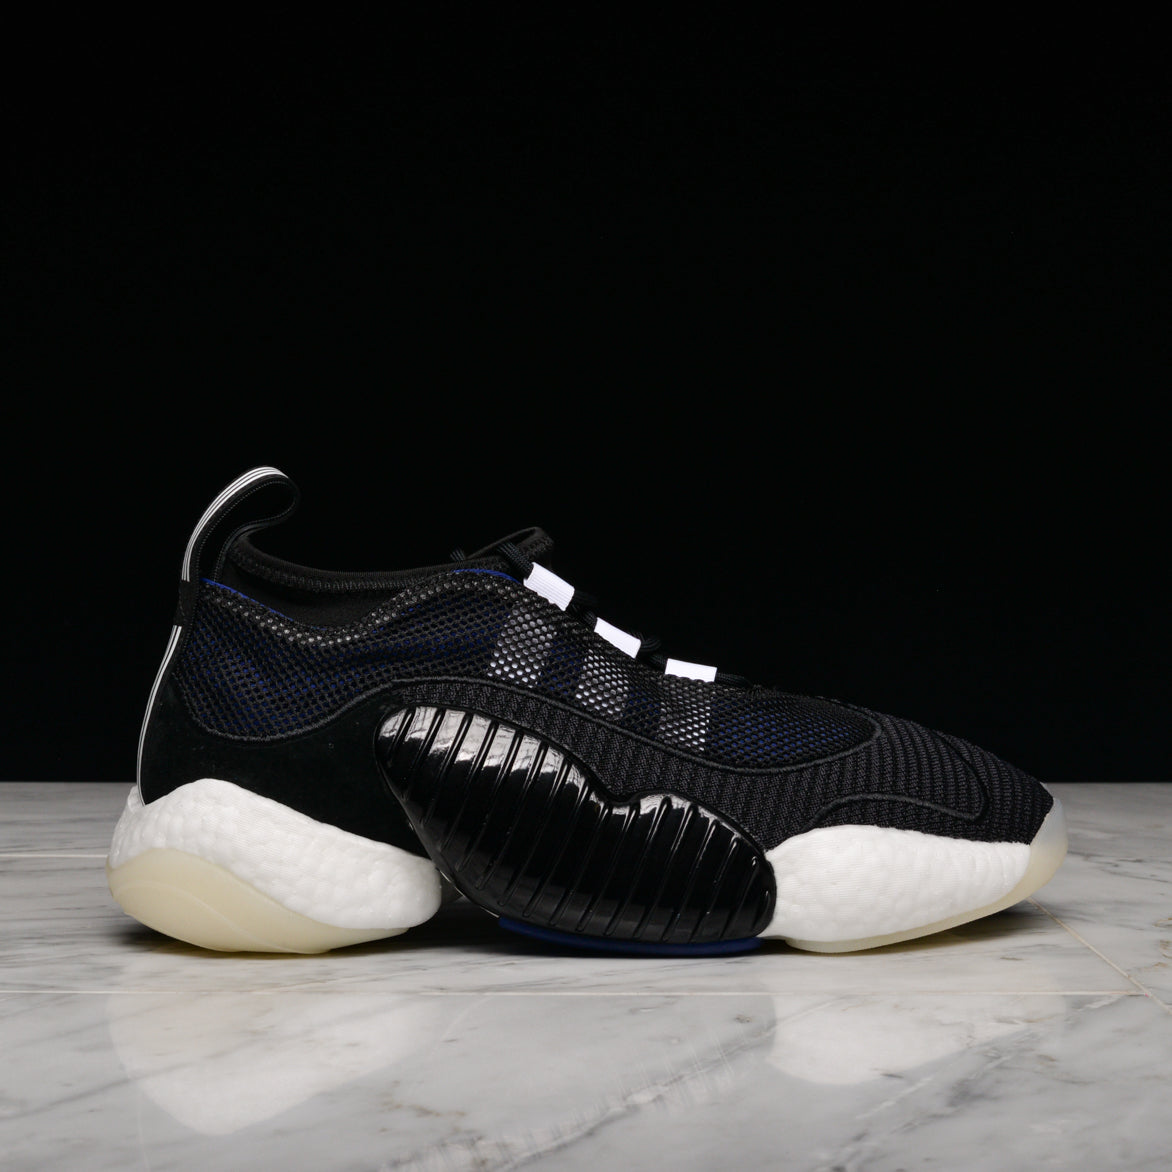 cheaper 3b0fe 302e6 CRAZY BYW LVL II - BLACK  REAL PURPLE  lapstoneandhammer.com